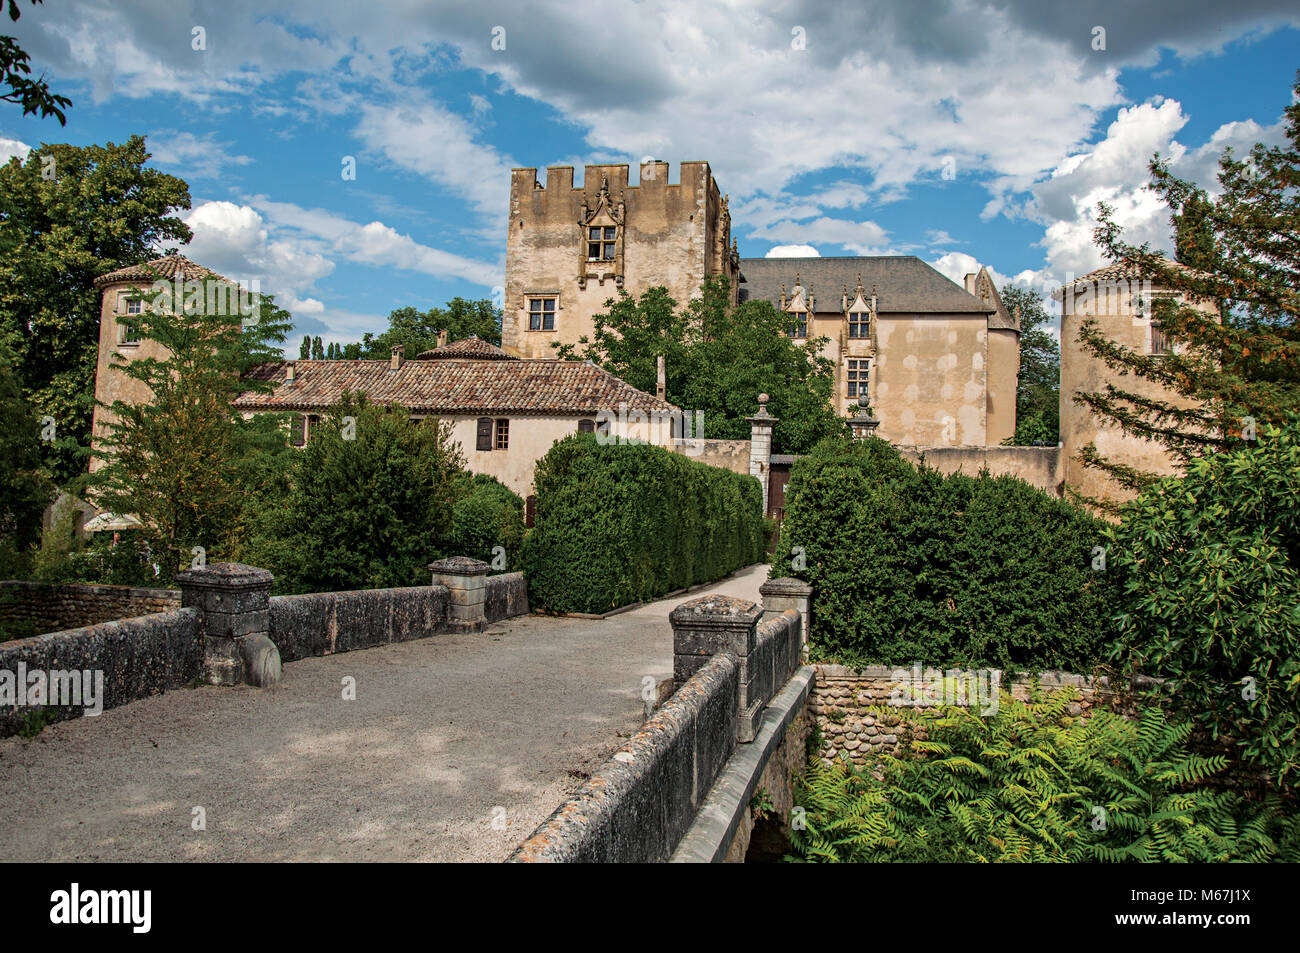 Panoramic view of Allemagne-en-Provence Castle and bridge, near the village of the same name. Located in the Provence - Stock Image